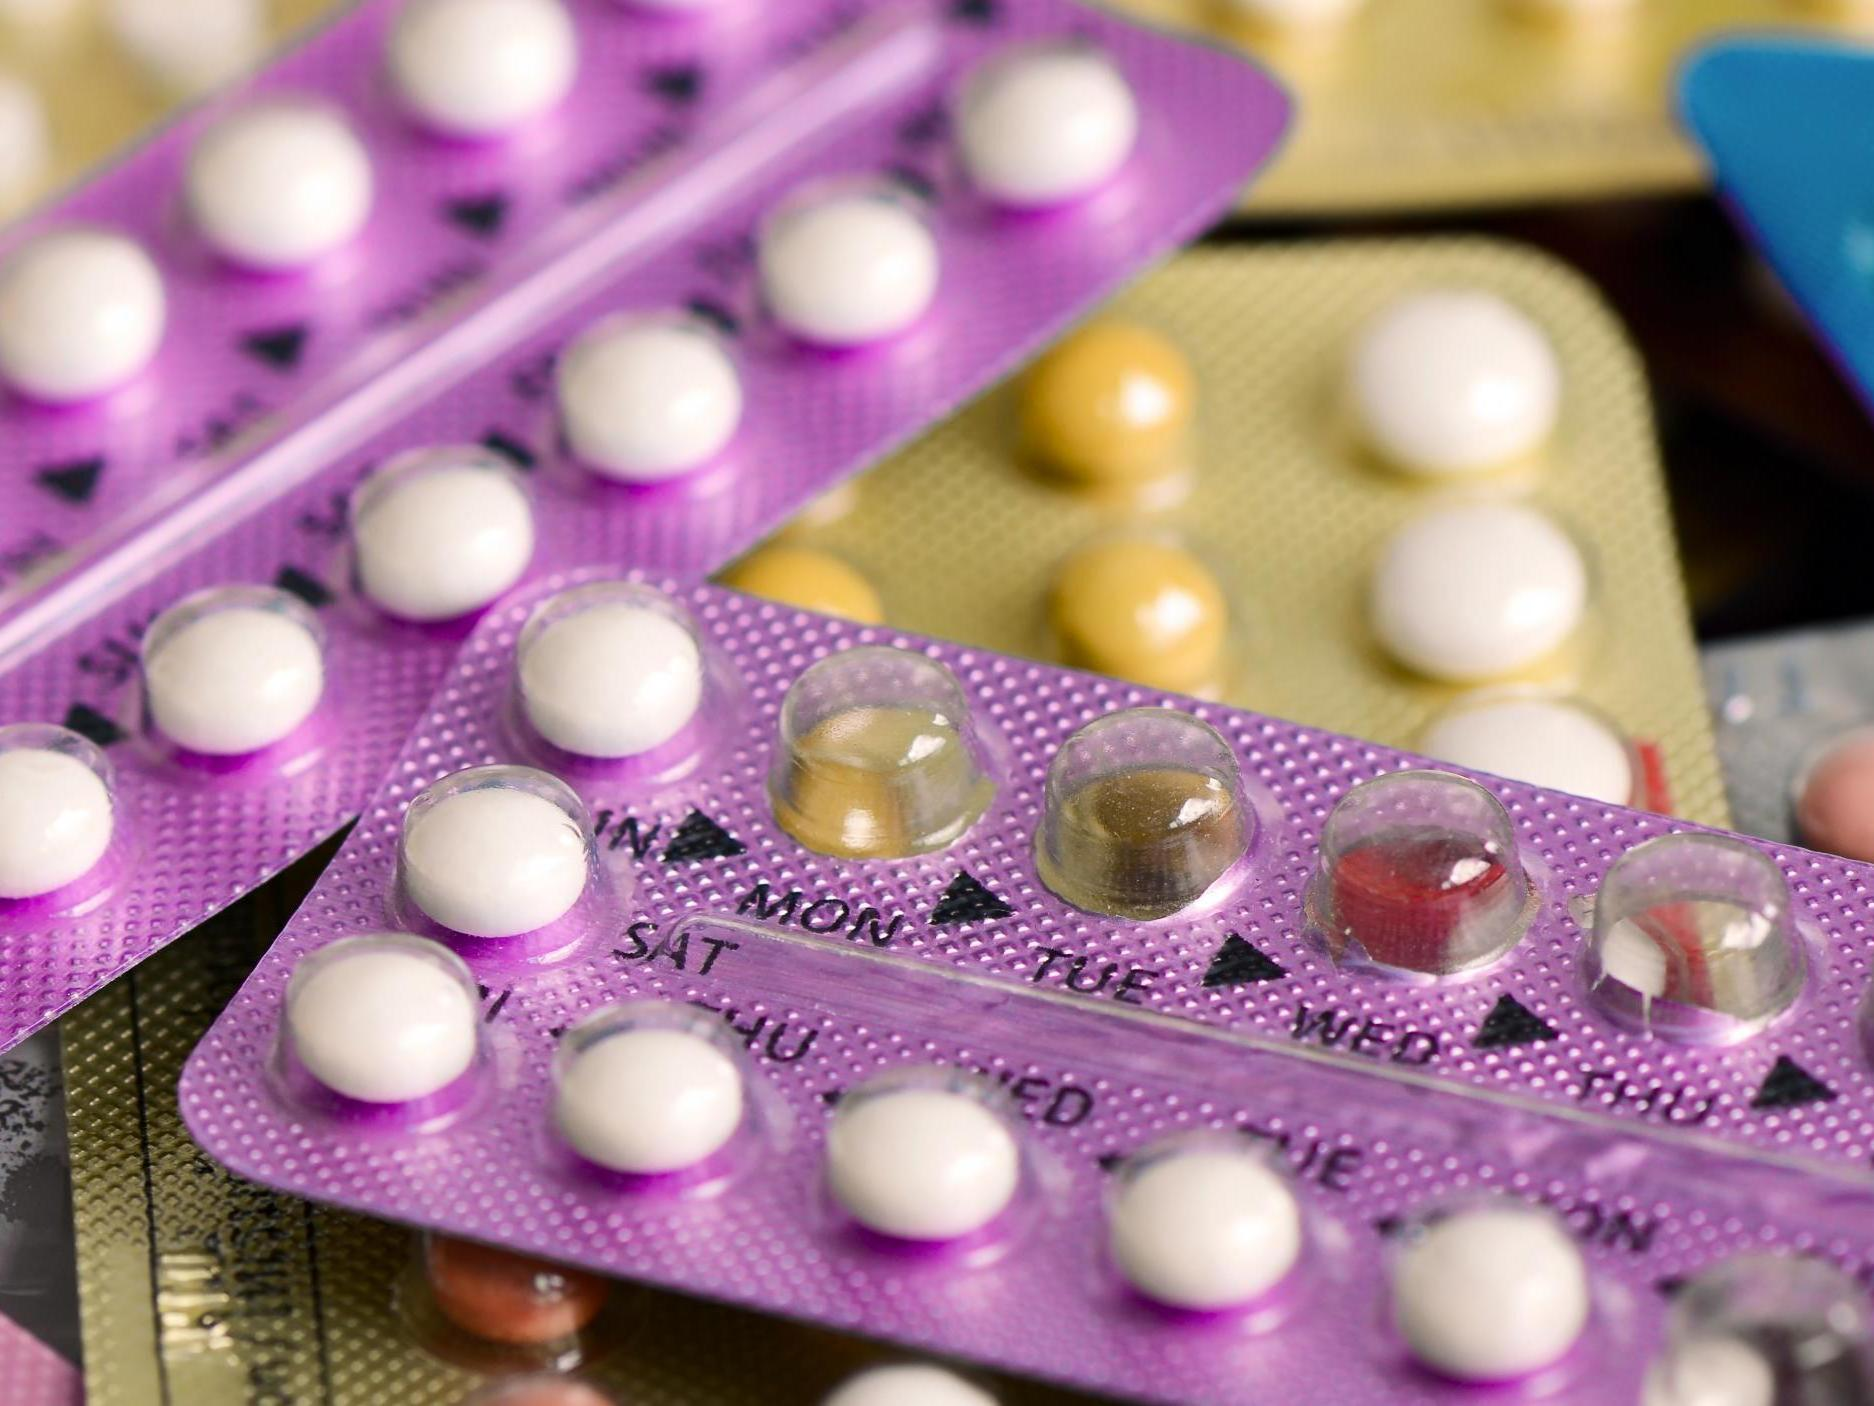 Birth Control Latest News Breaking Stories And Comment